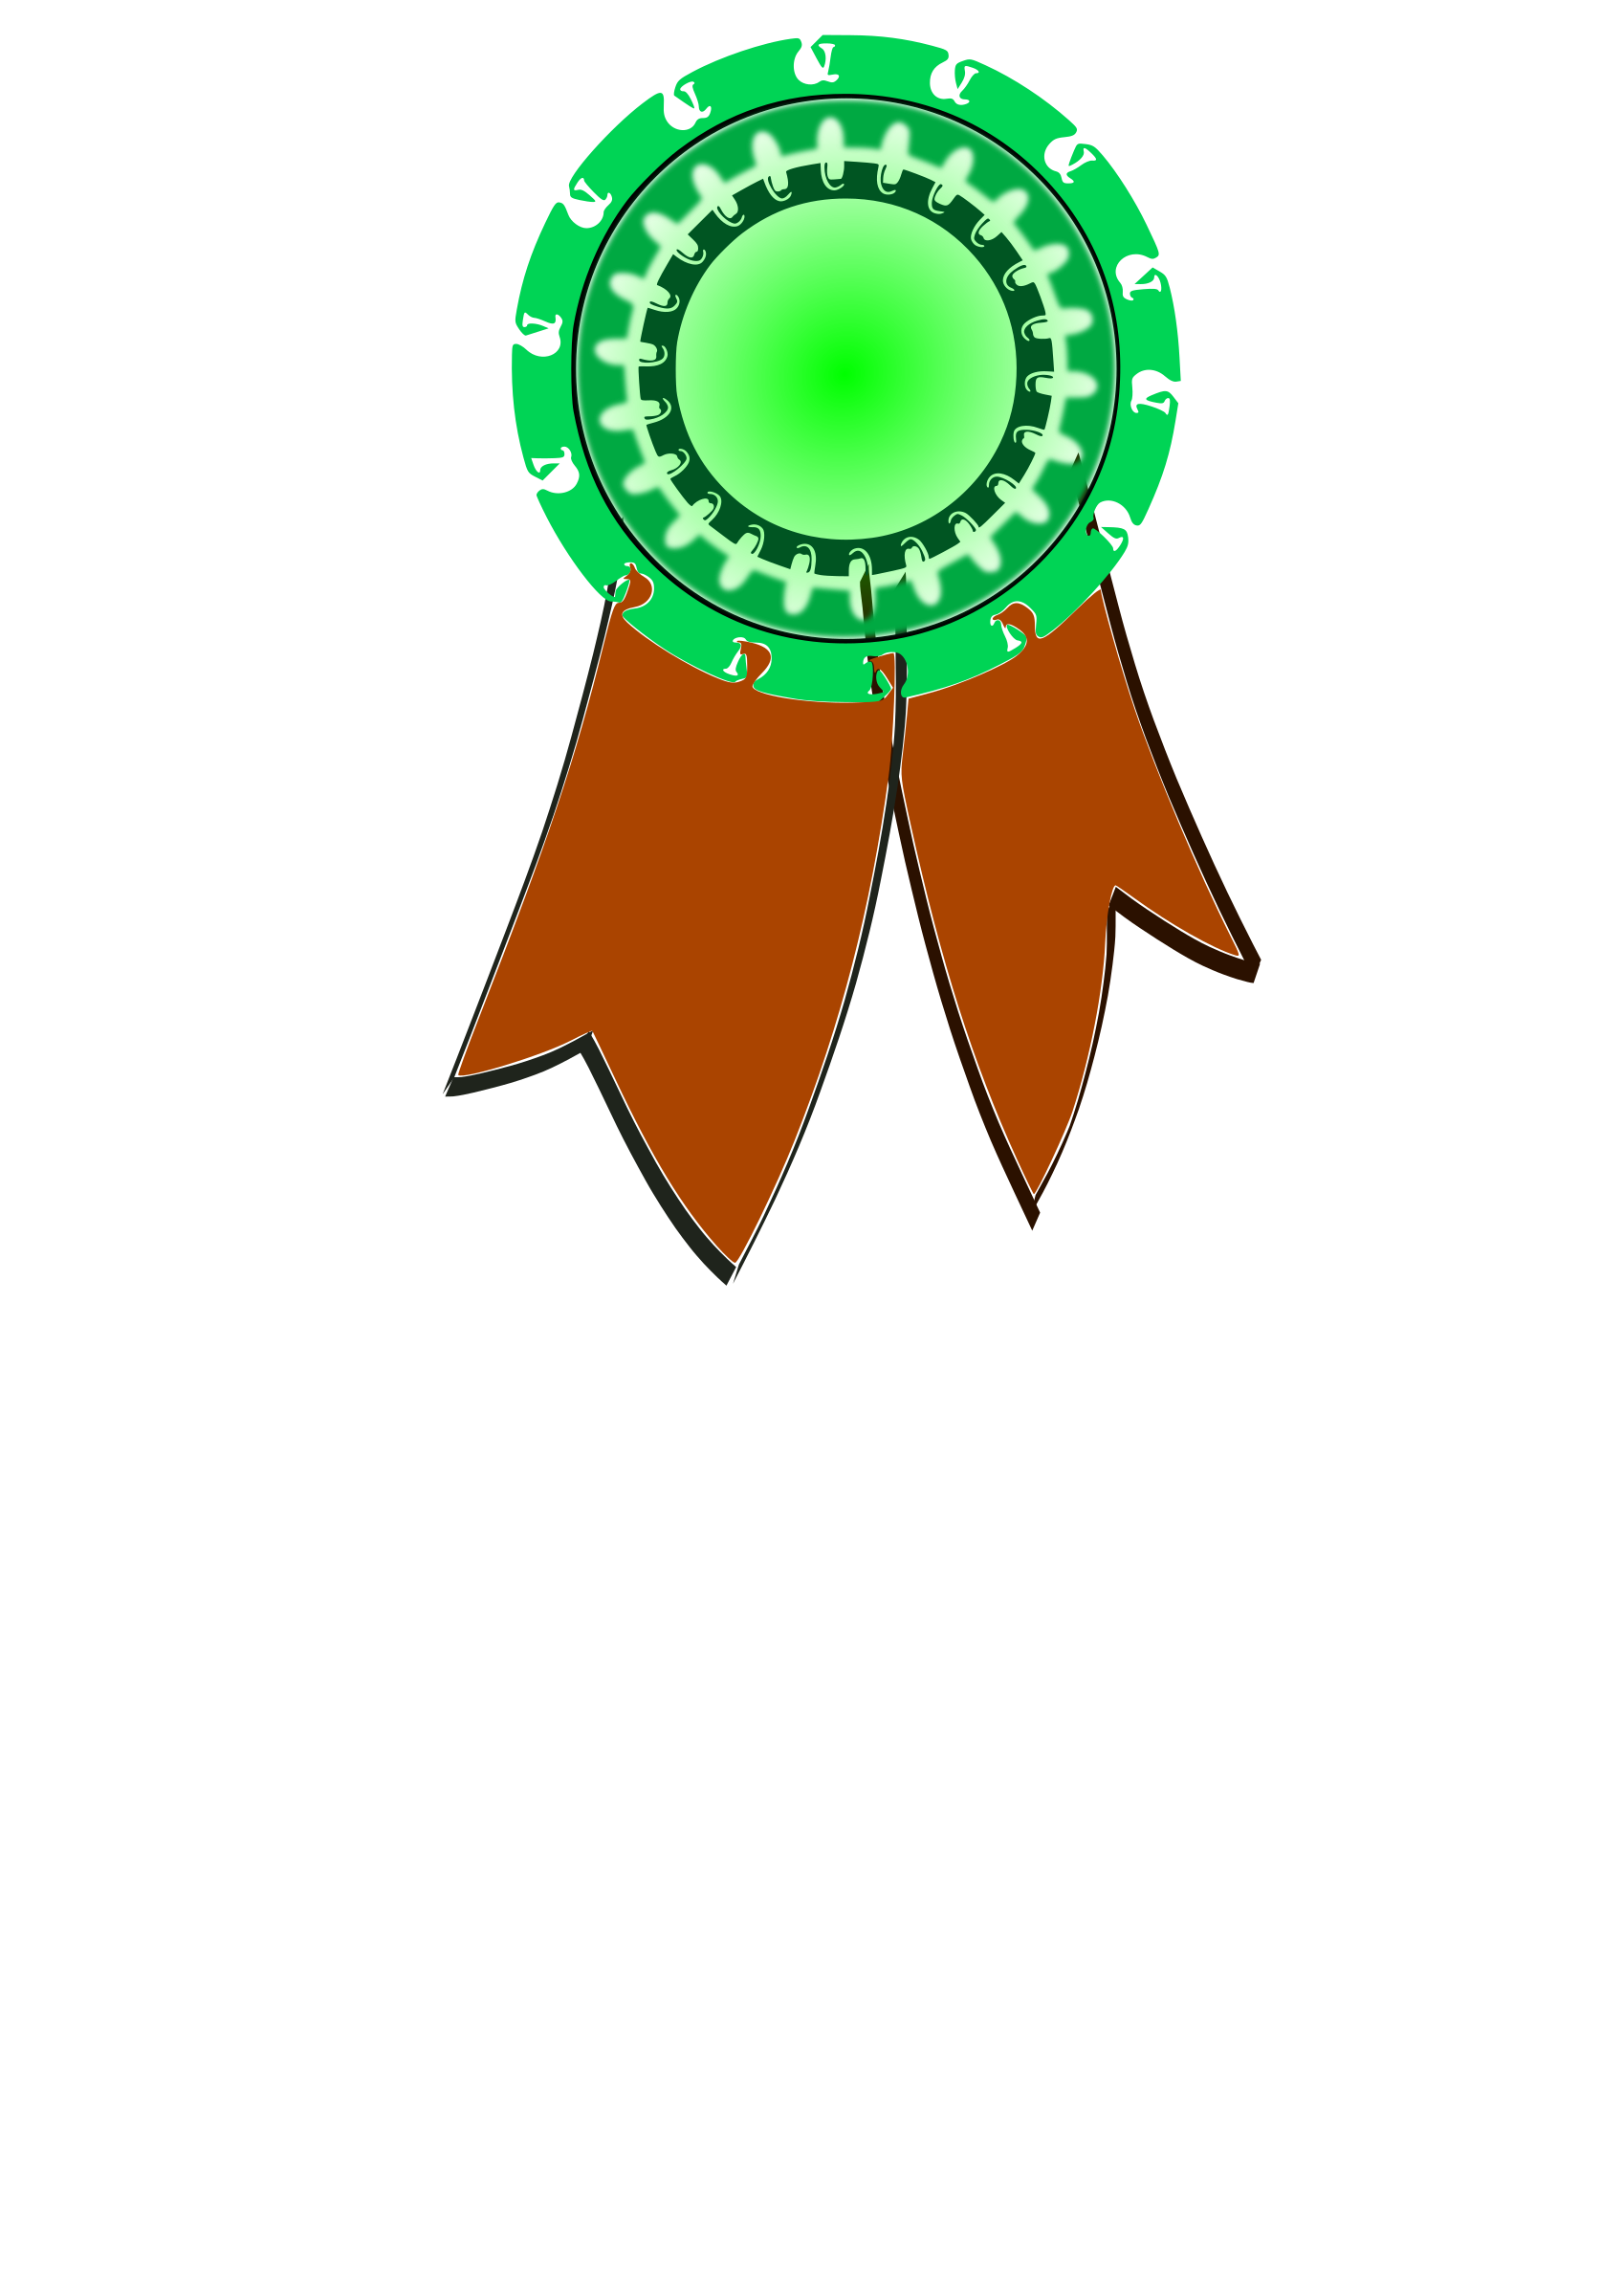 Award ribbon by cprostire